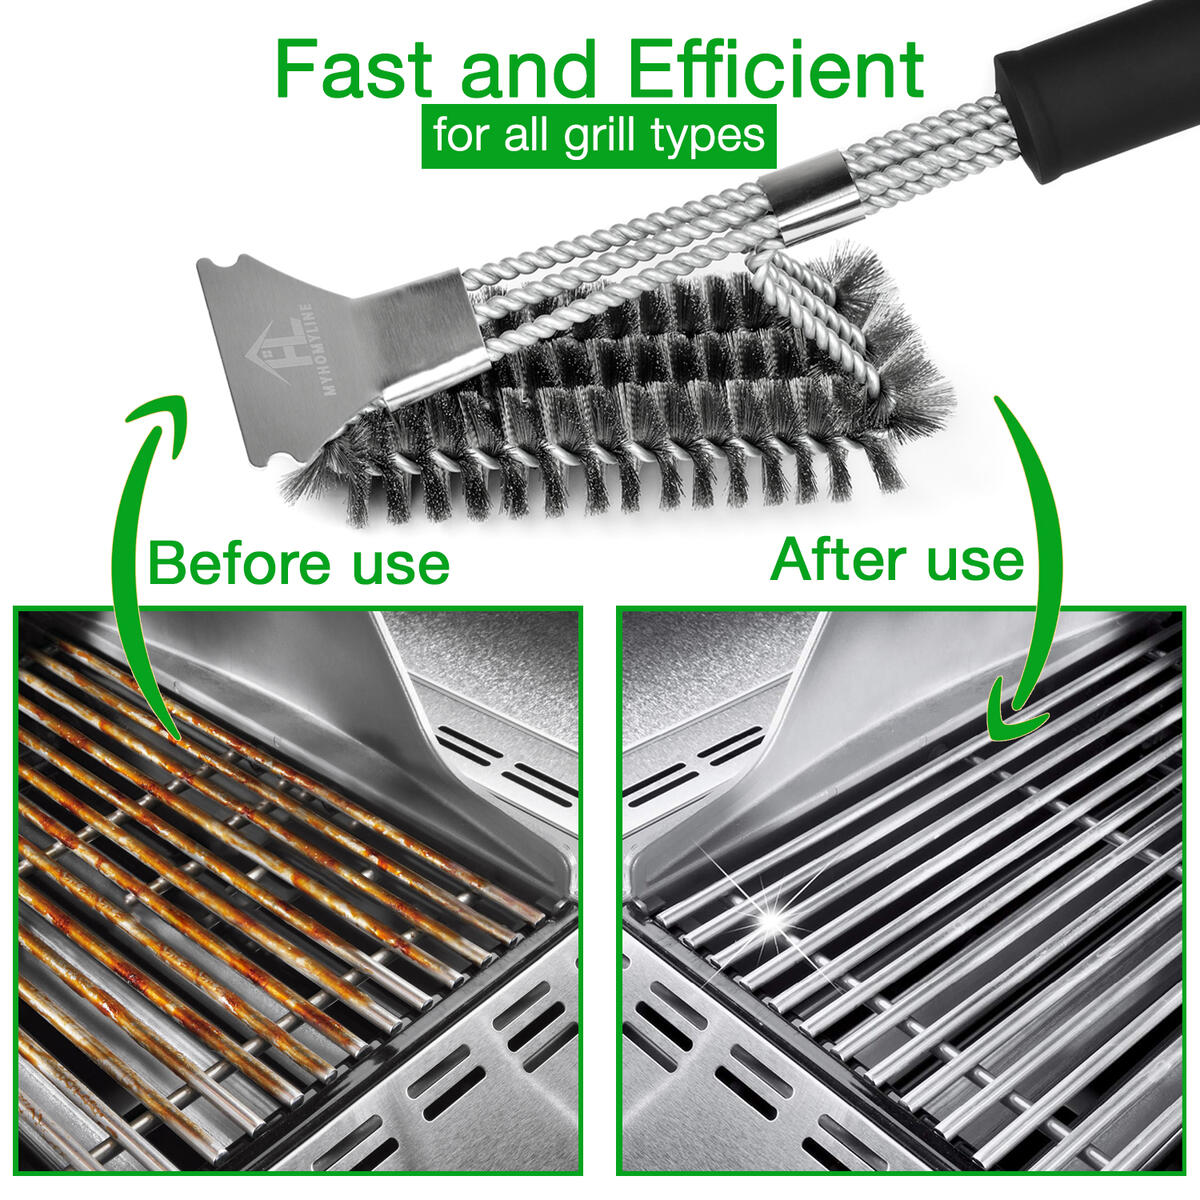 BBQ Grill Brush and Scraper - Heavy Duty Barbecue Grill Brush for Weber, Gas, Charcoal, Iron, Porcelain, All Grilling Grates - Safe Stainless Steel 18 Inch BBQ Brush with Grill Scraper